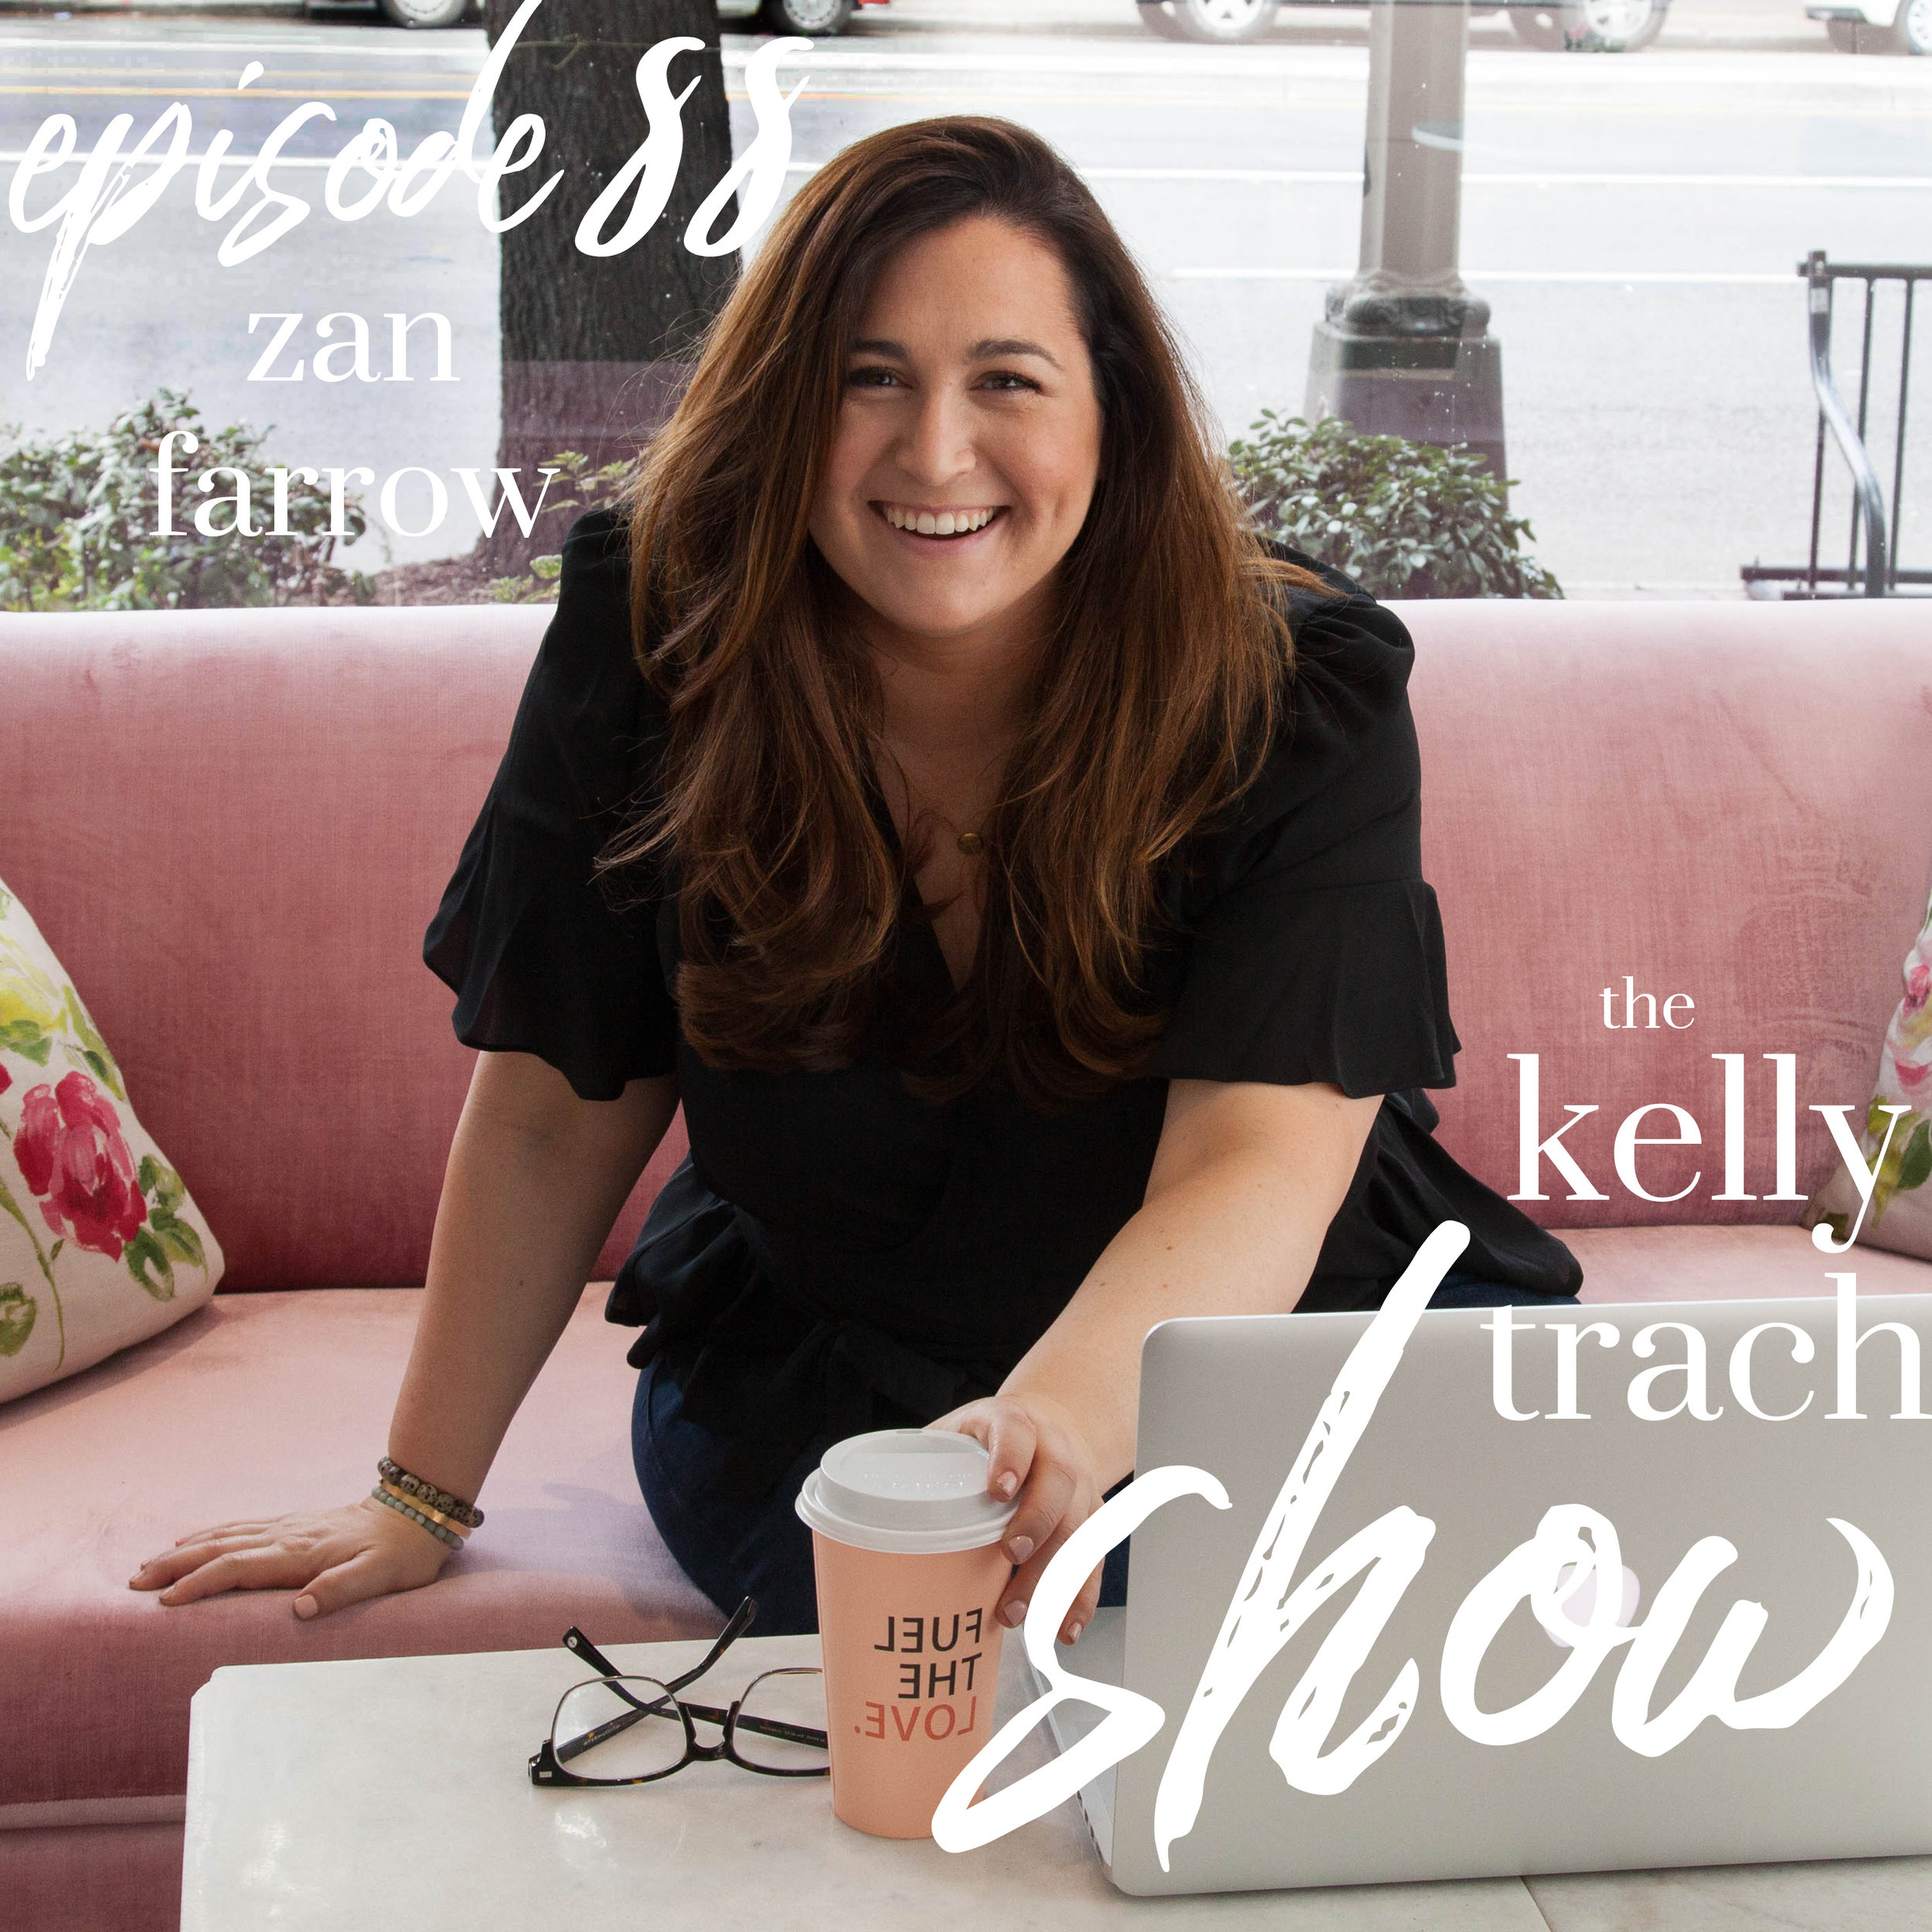 the kelly trach show (PODCAST) - Kelly interviews Zan on her experience with intuition, working with her as a coach, and going all-in on her own business.